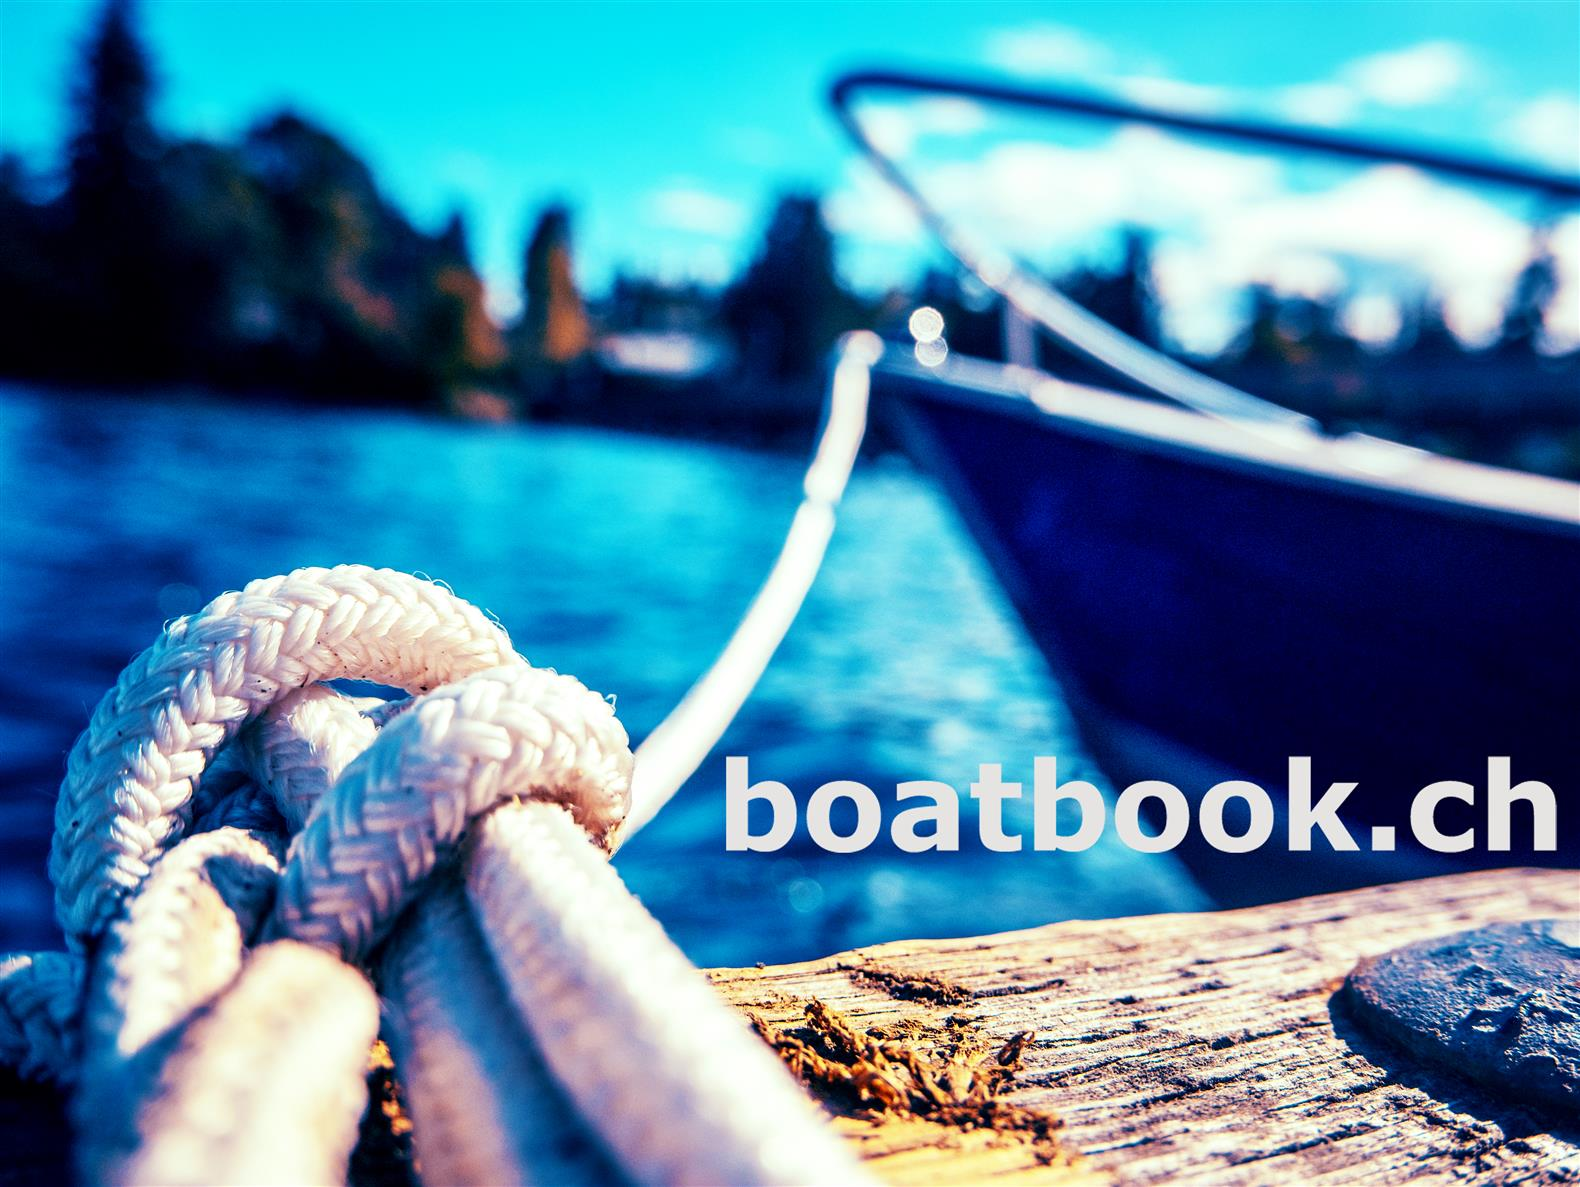 Boatbook-Festmacher